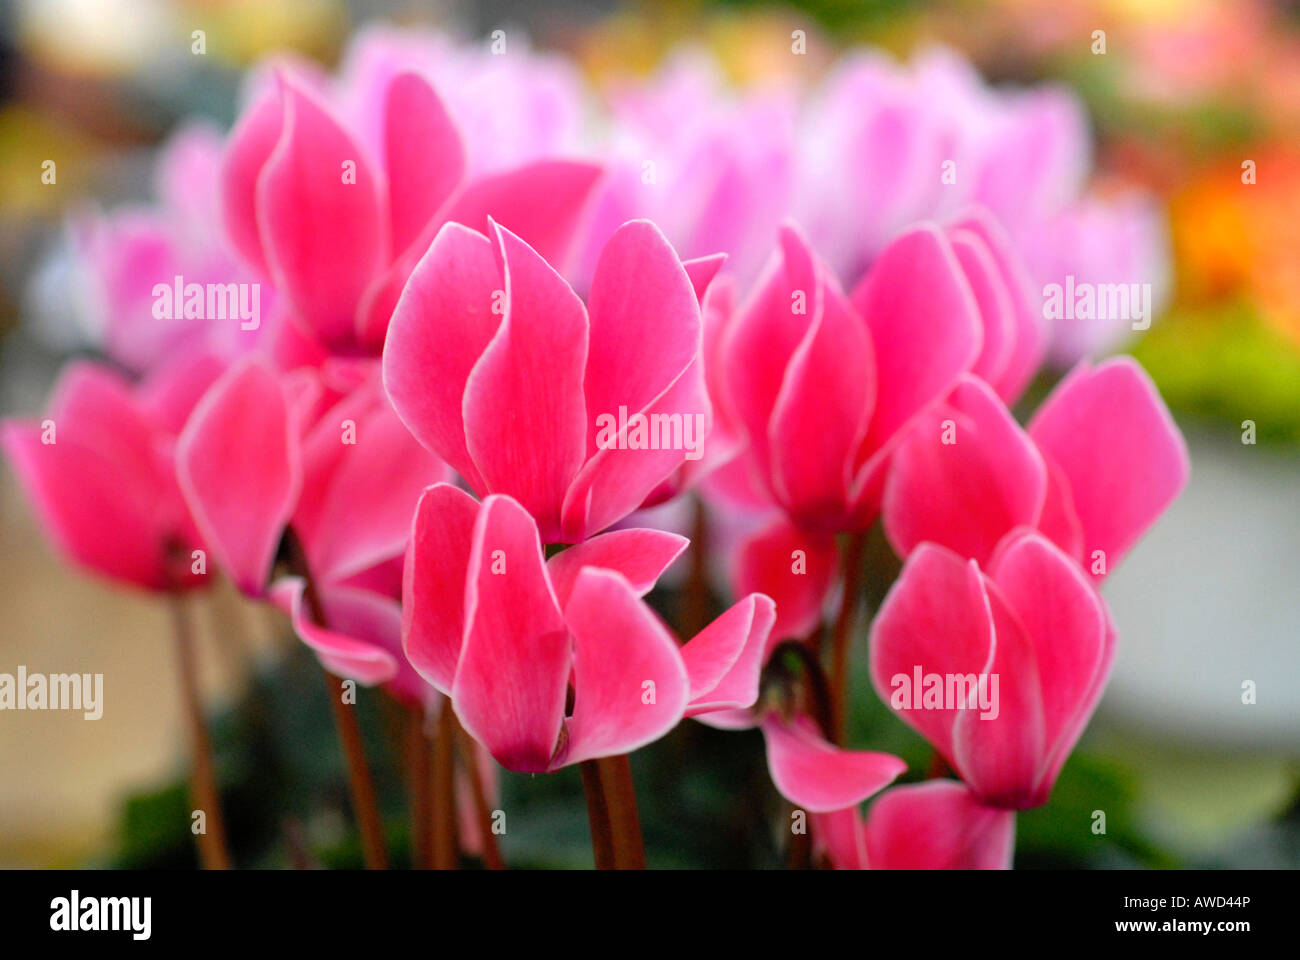 Sowbreads or Persian Violets (Cyclamen), market, Schwaebisch Gmuend, Baden-Wuerttemberg, Germany, Europe - Stock Image